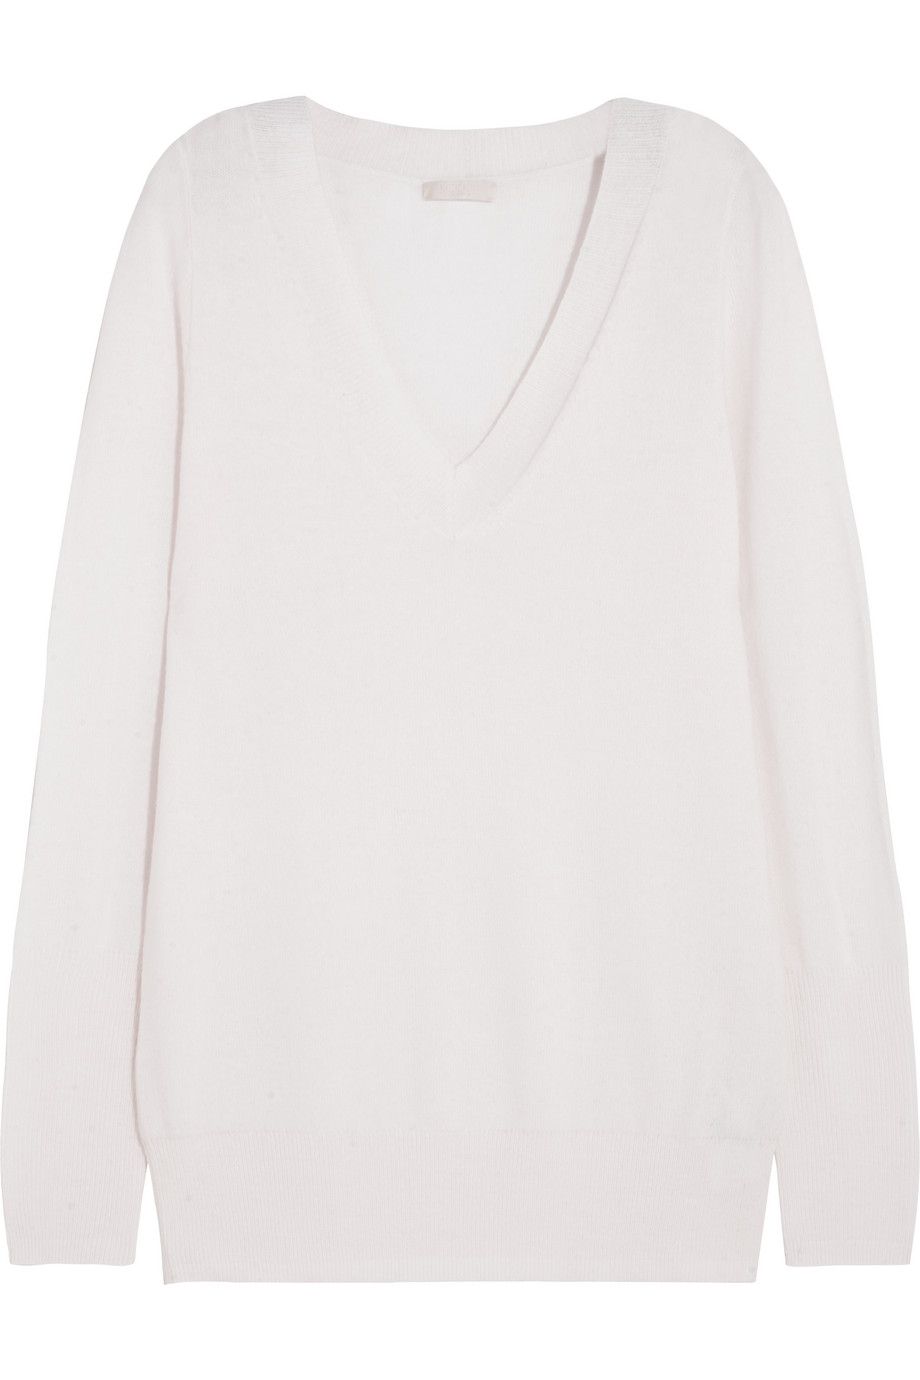 J.Crew Collection Cashmere Sweater, Size: XL